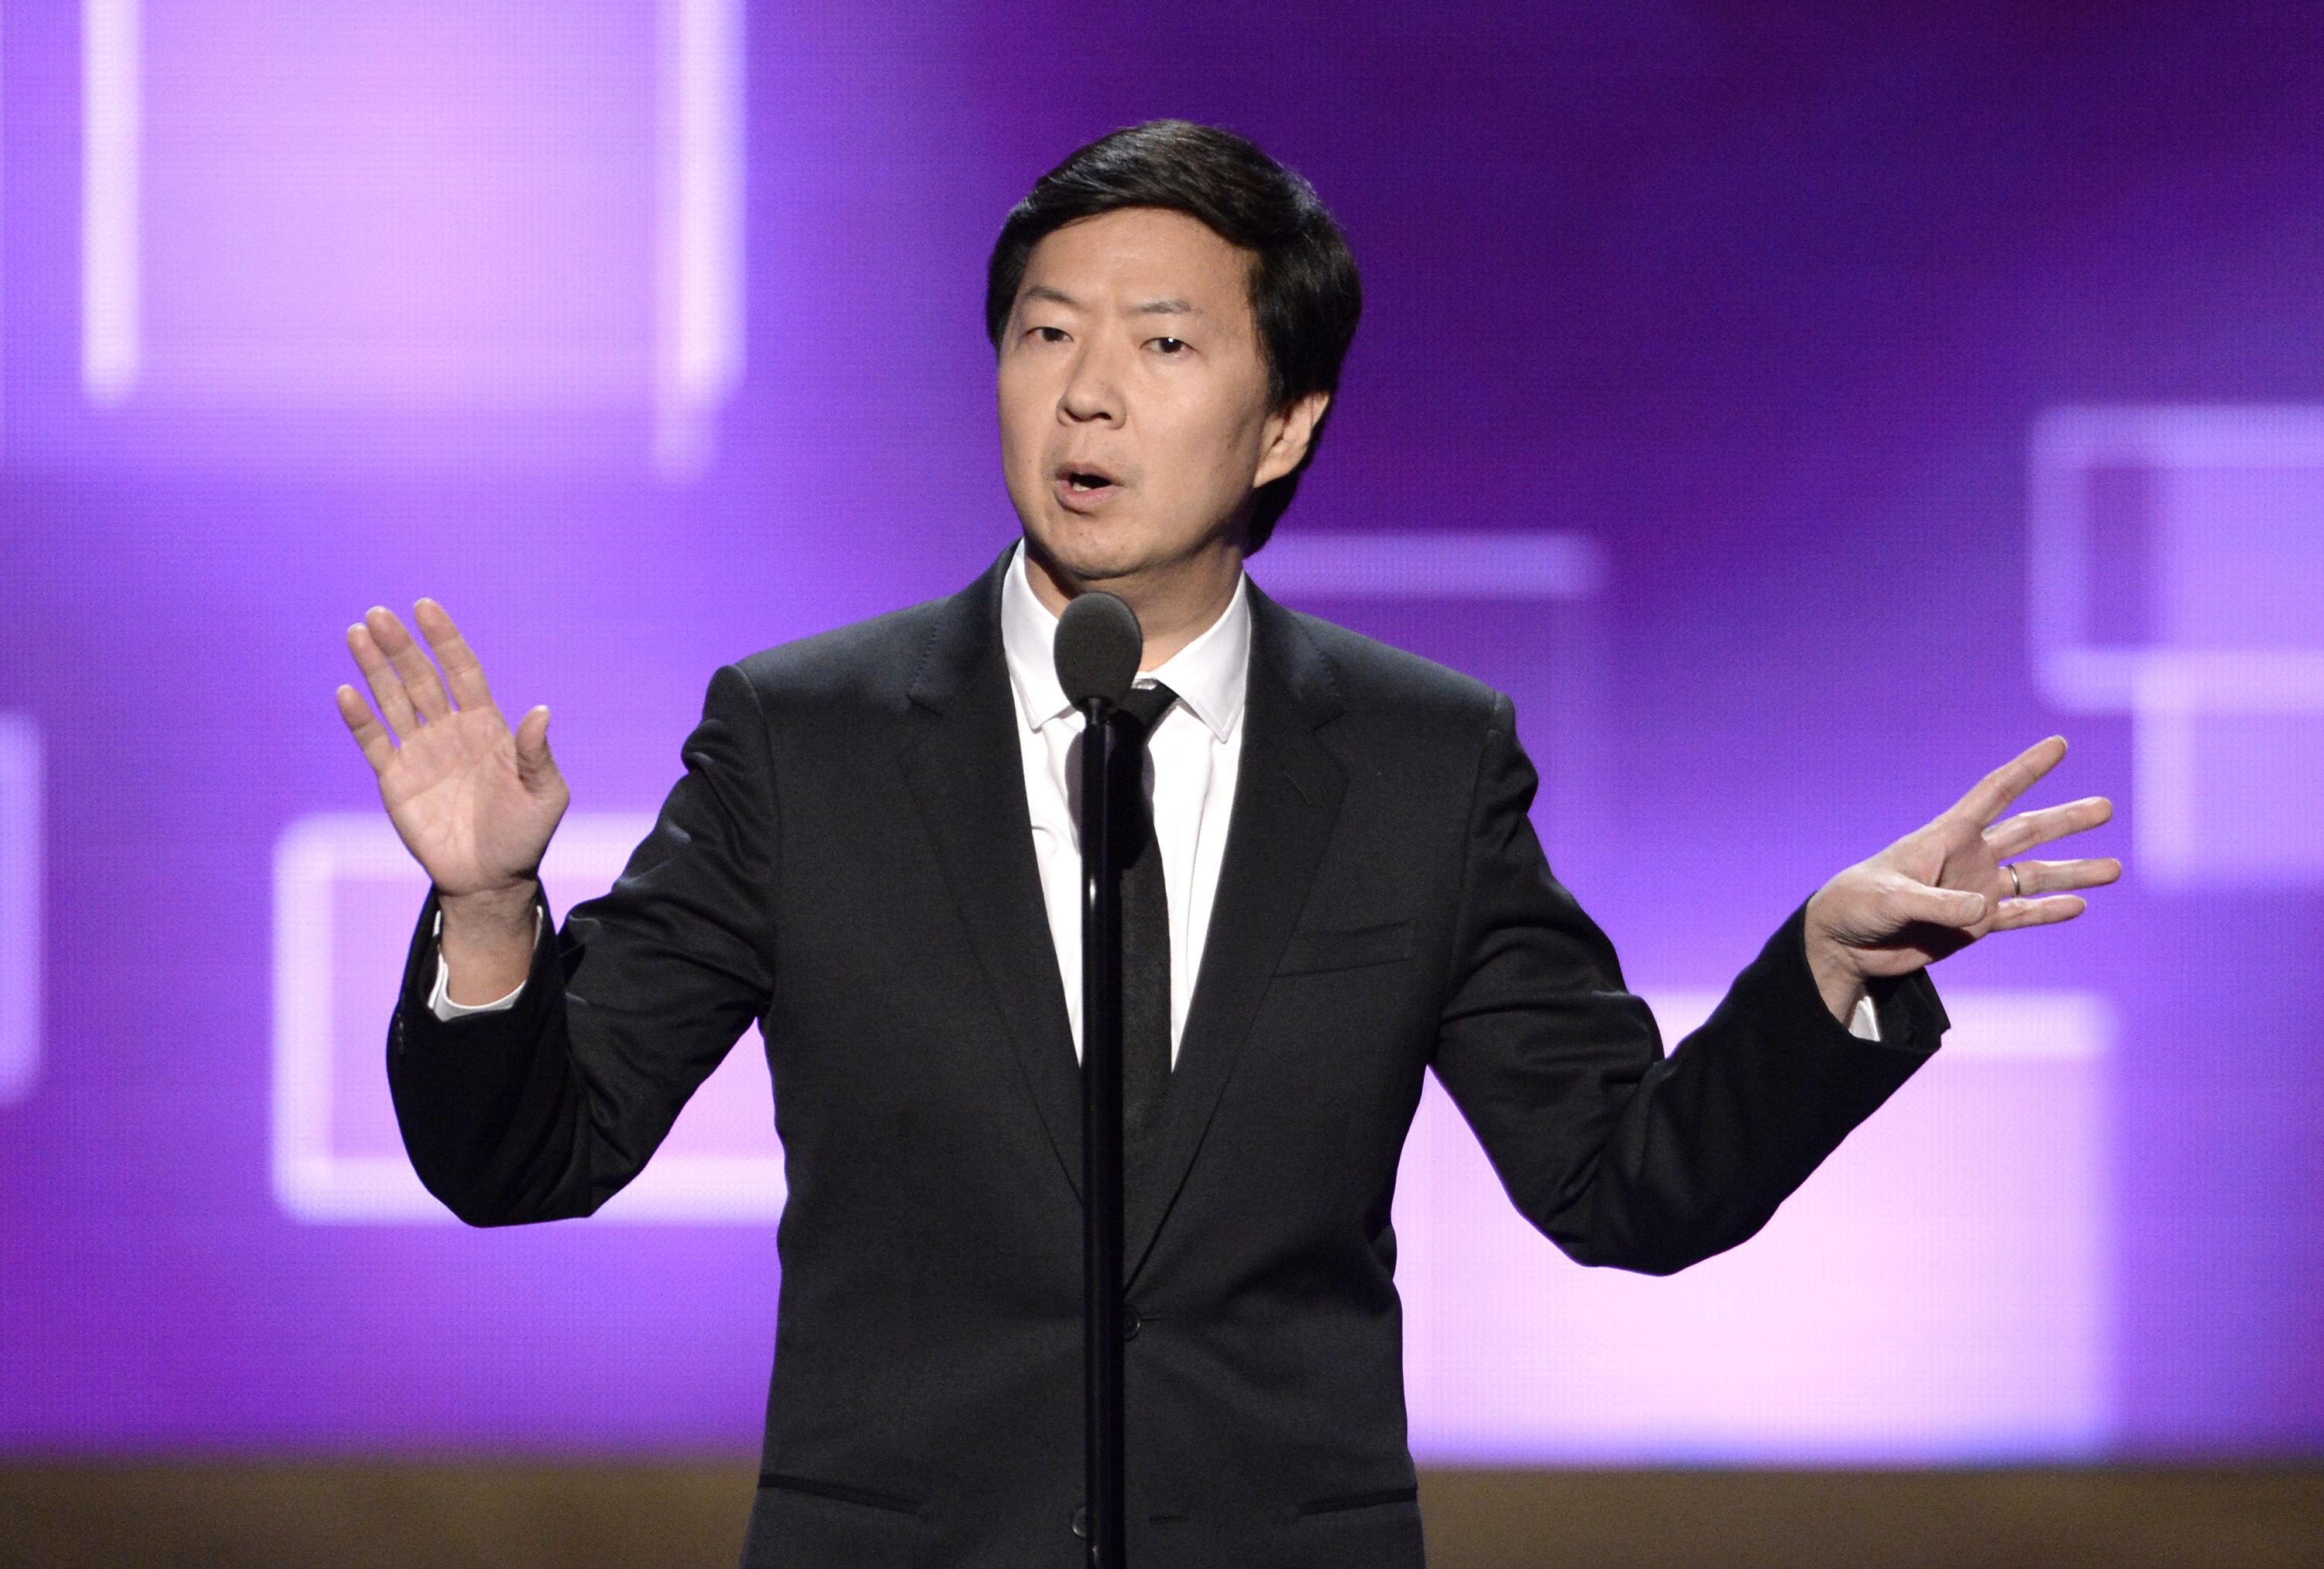 Ken Jeong at the Creative Arts Emmy Awards on Sept. 12 in Los Angeles.